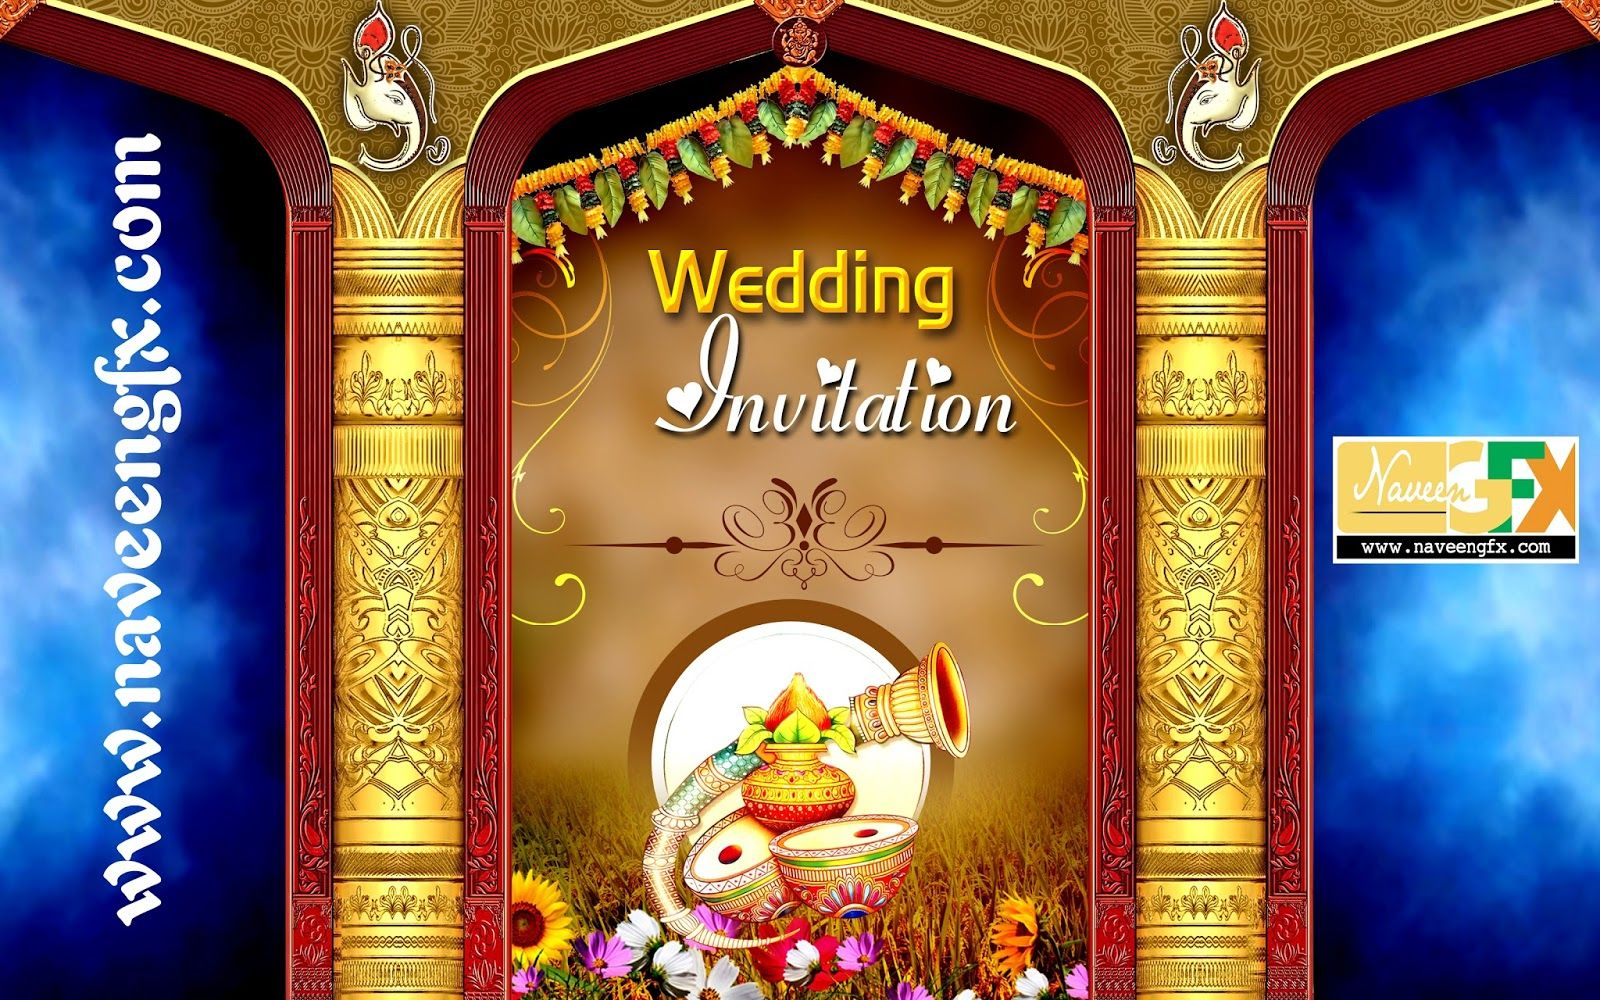 Indian Wedding Banner Psd Template Free Download Jpg 1600 1000